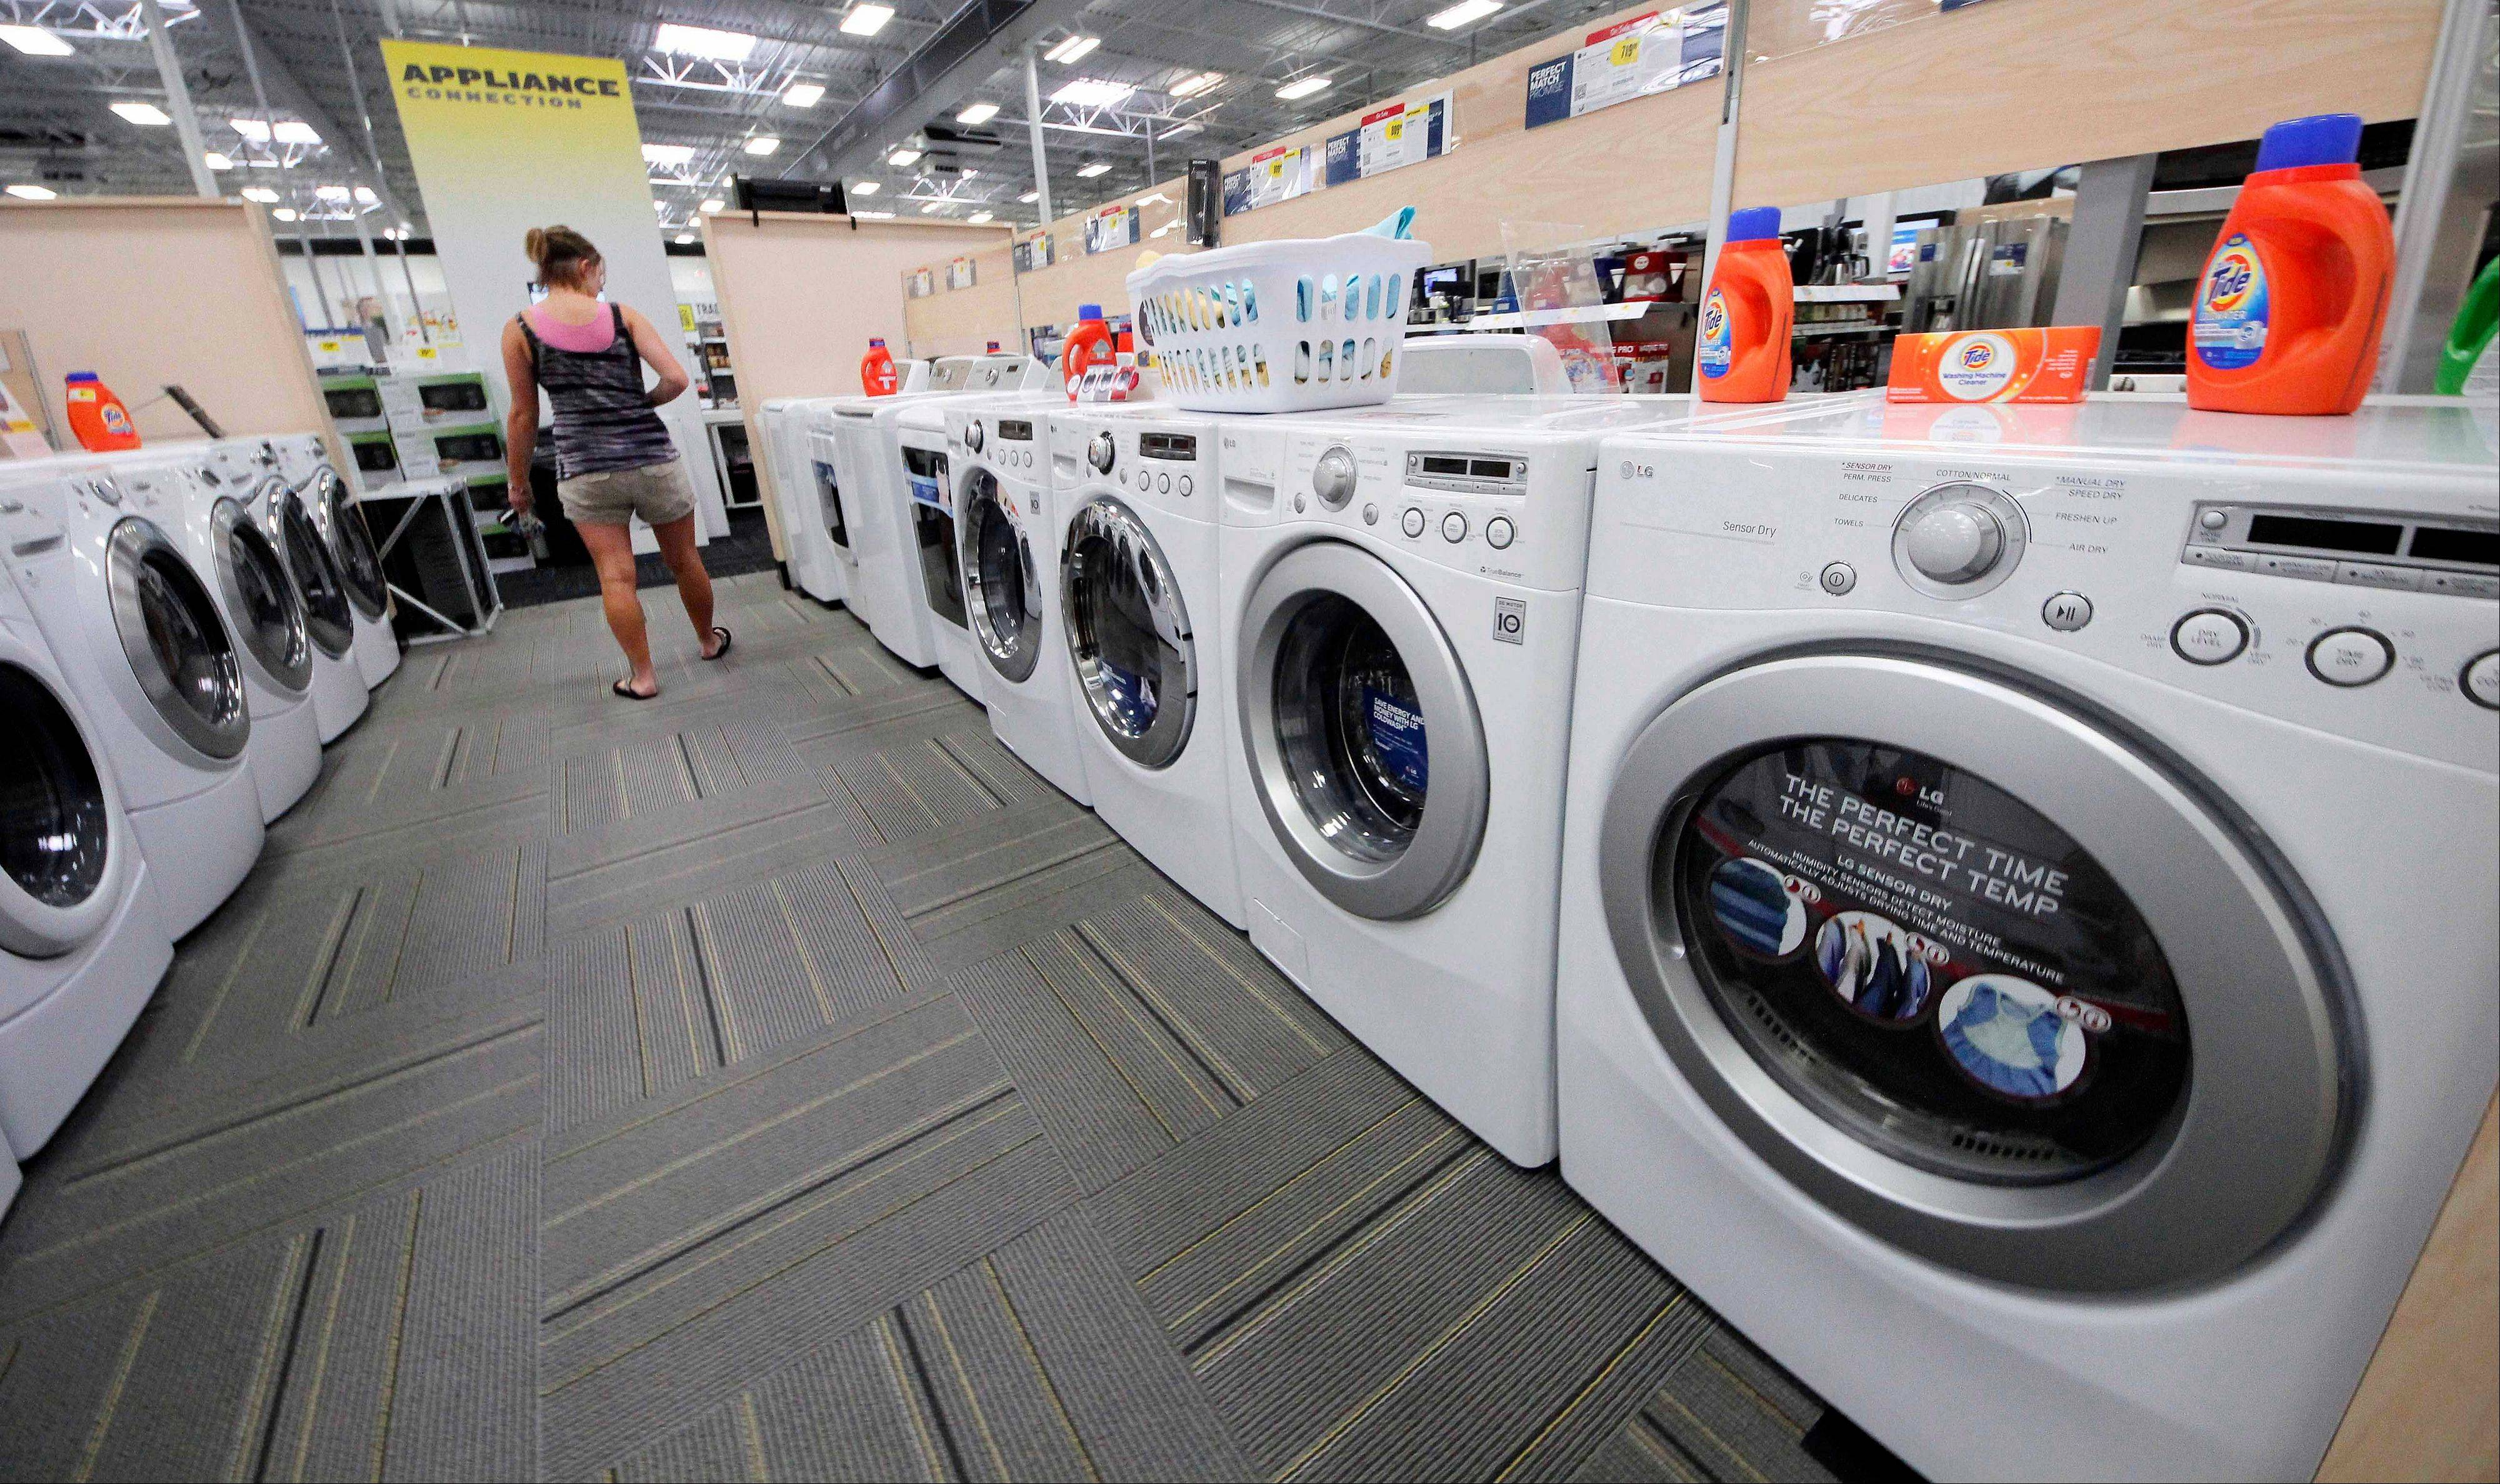 Demand for durable goods, items expected to last at least three years, dropped 4.9 percent.